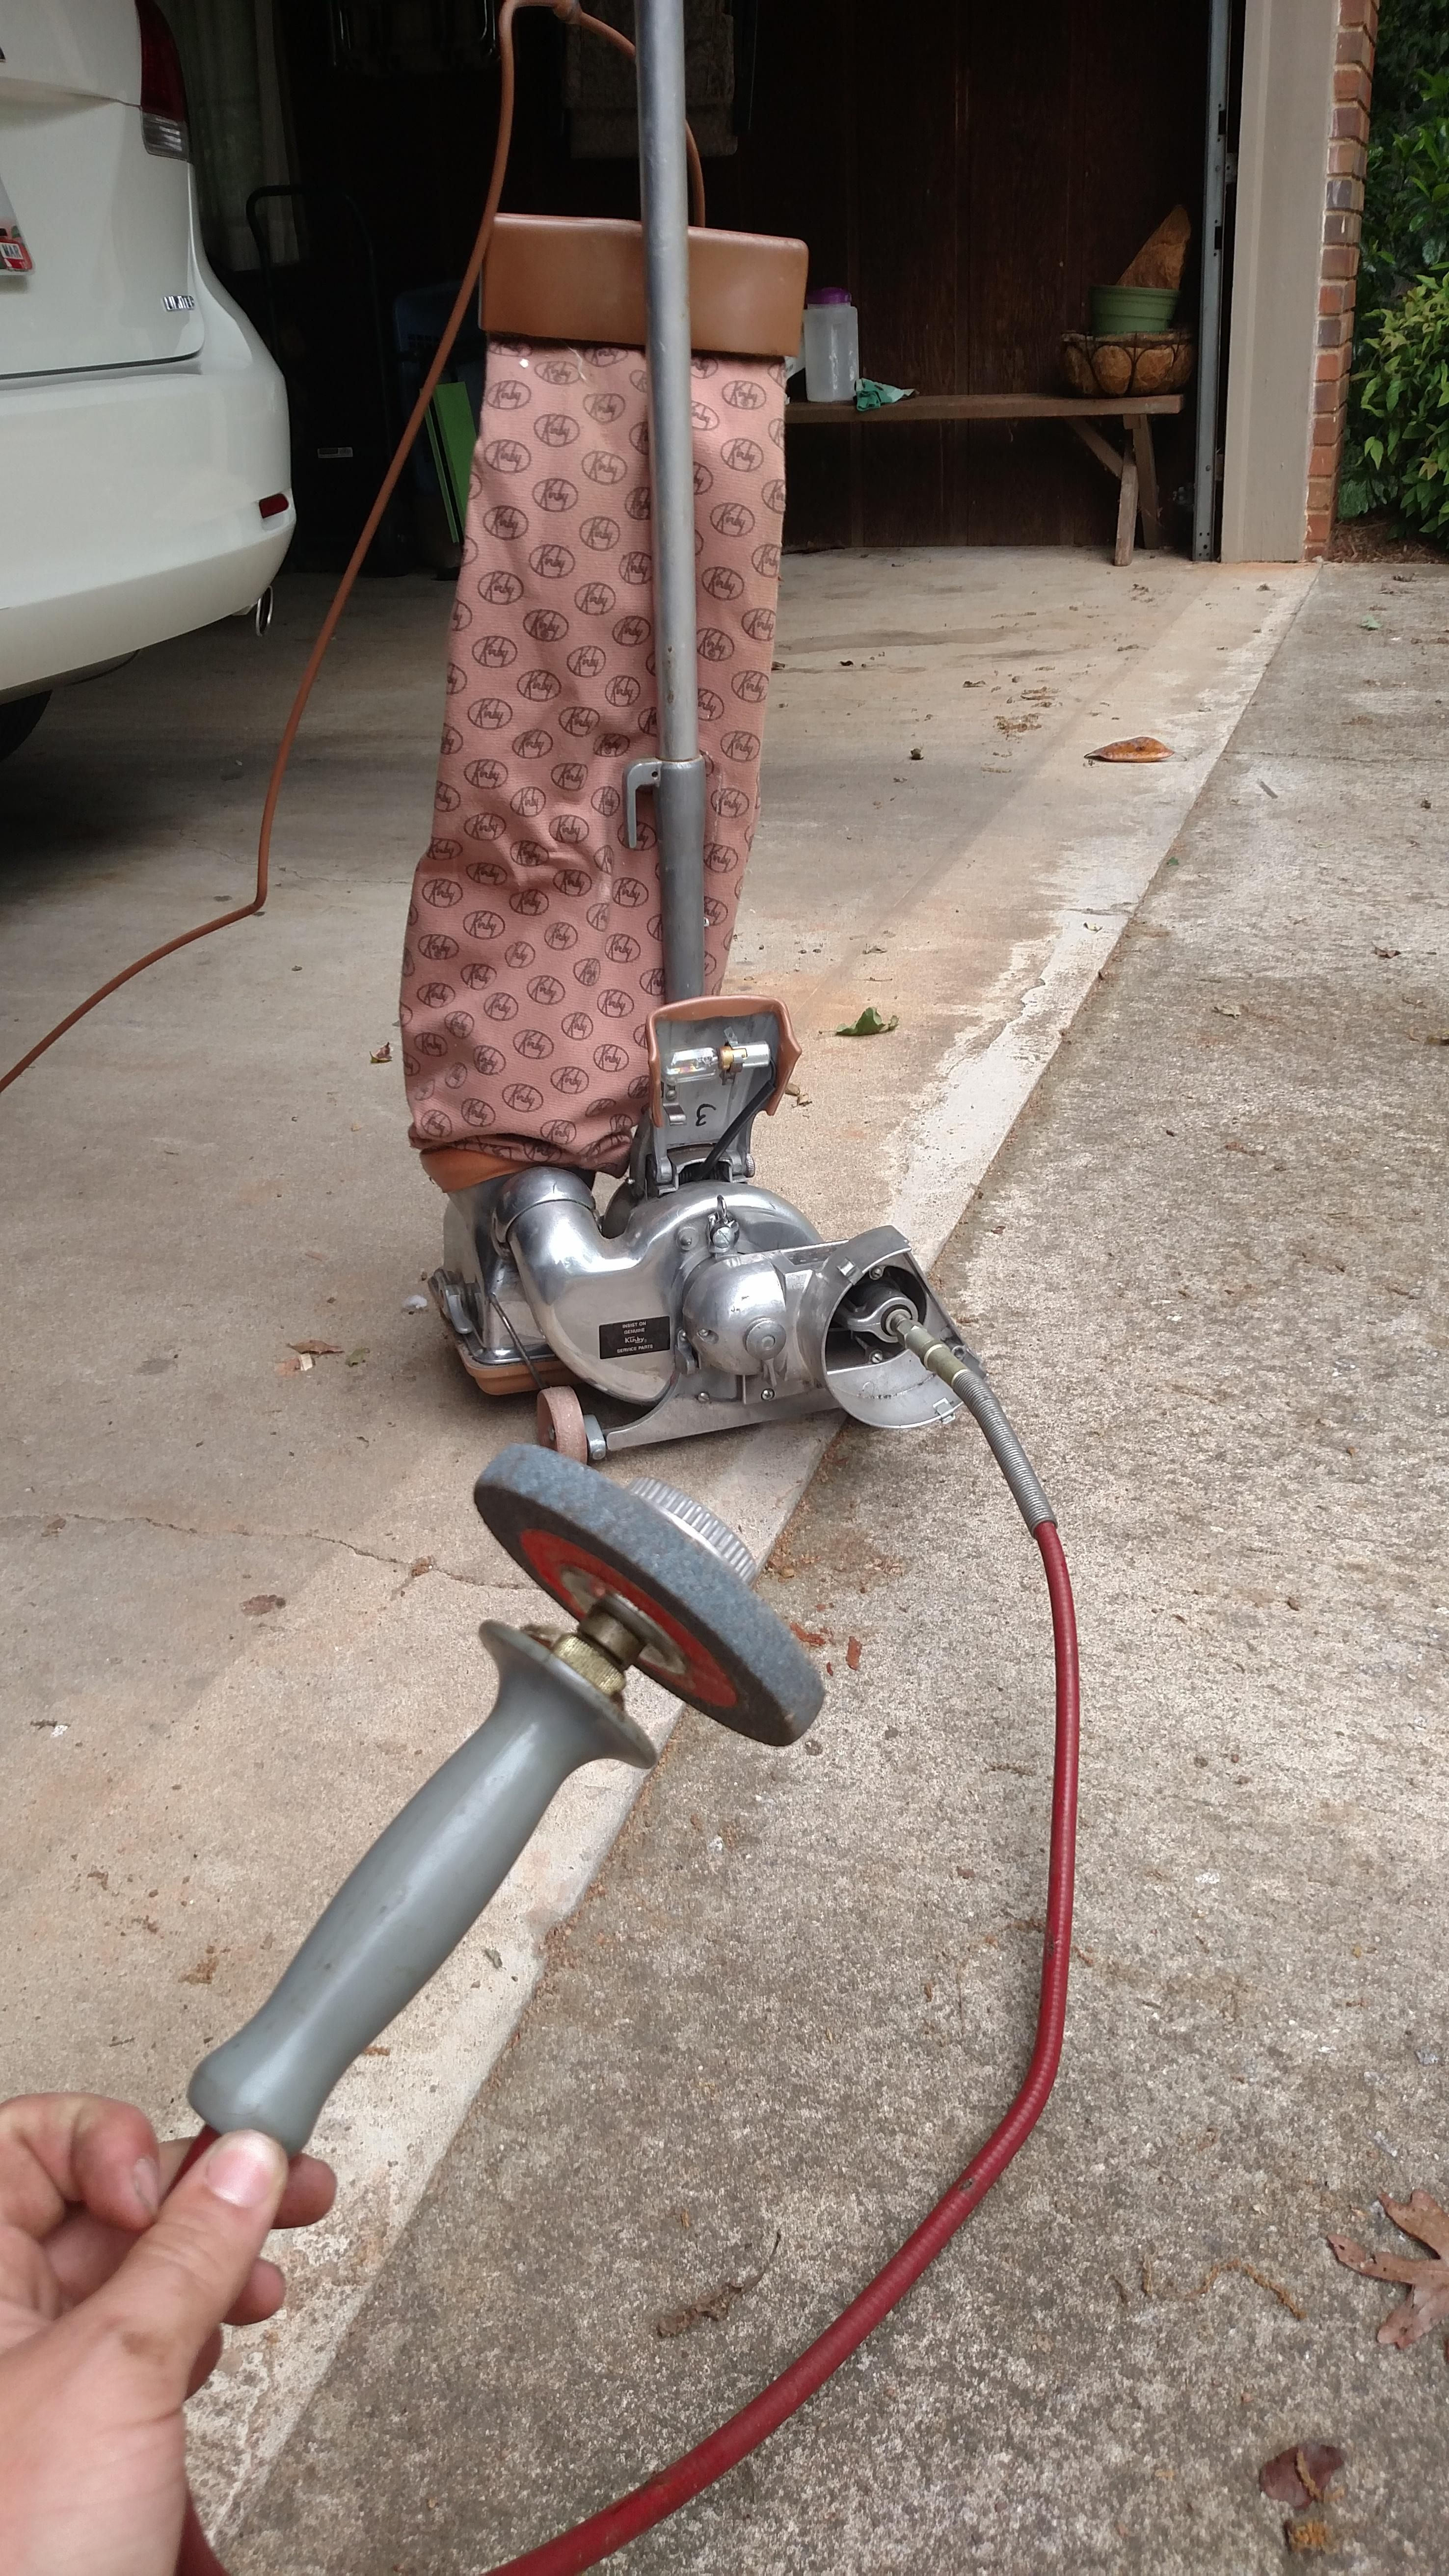 Grinder Attachment For A Kirby Vacuum Kirby Vacuum Cleaning Walls Vacuum Cleaner